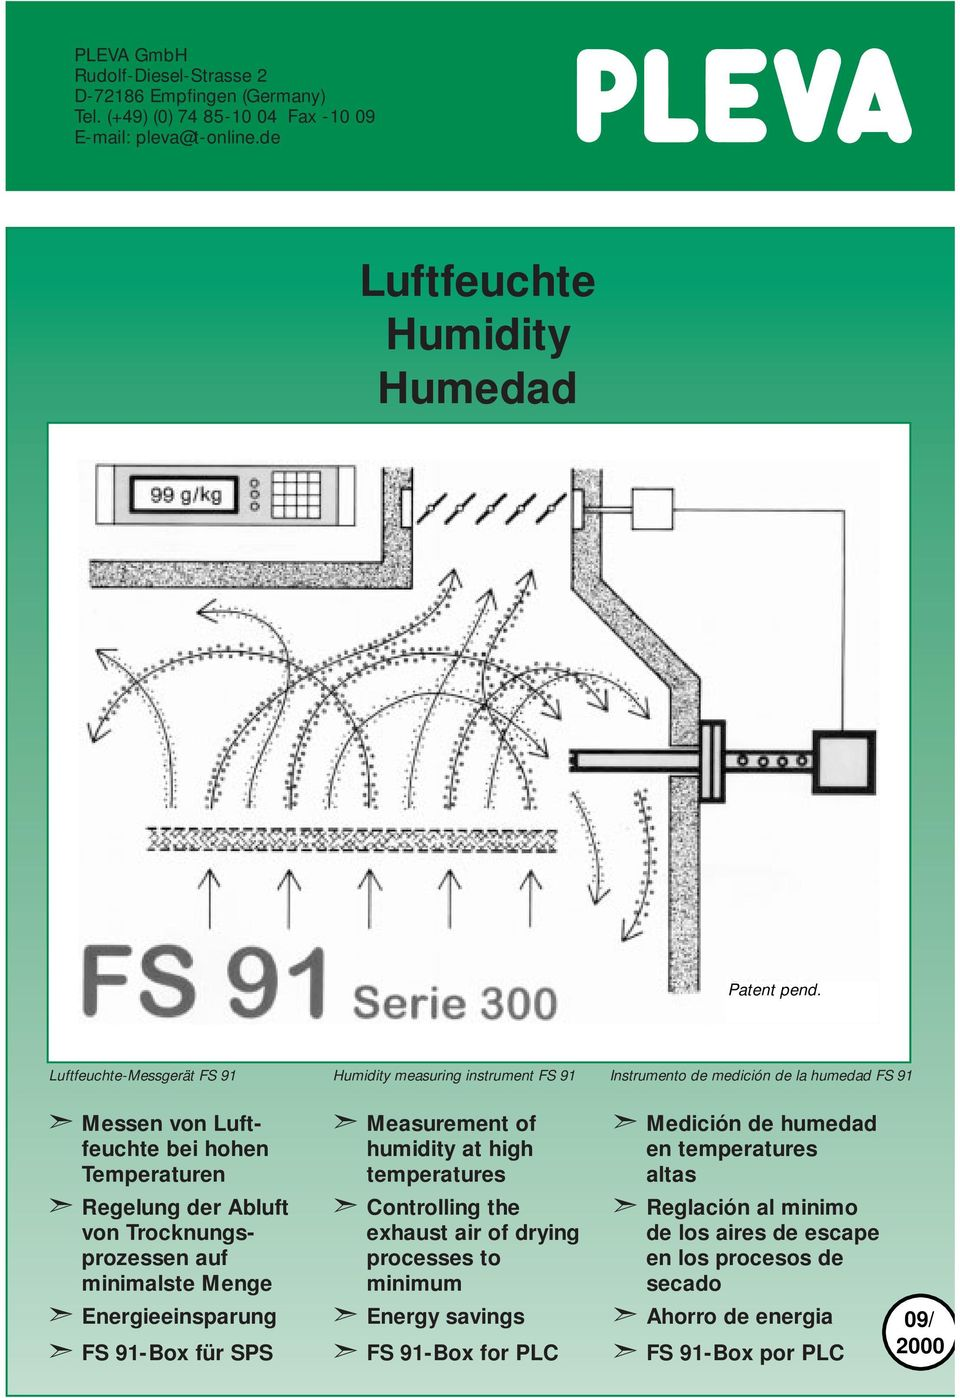 Trocknungsprozessen auf minimalste Menge Energieeinsparung FS 91-Box für SPS Measurement of humidity at high temperatures Controlling the exhaust air of drying processes to